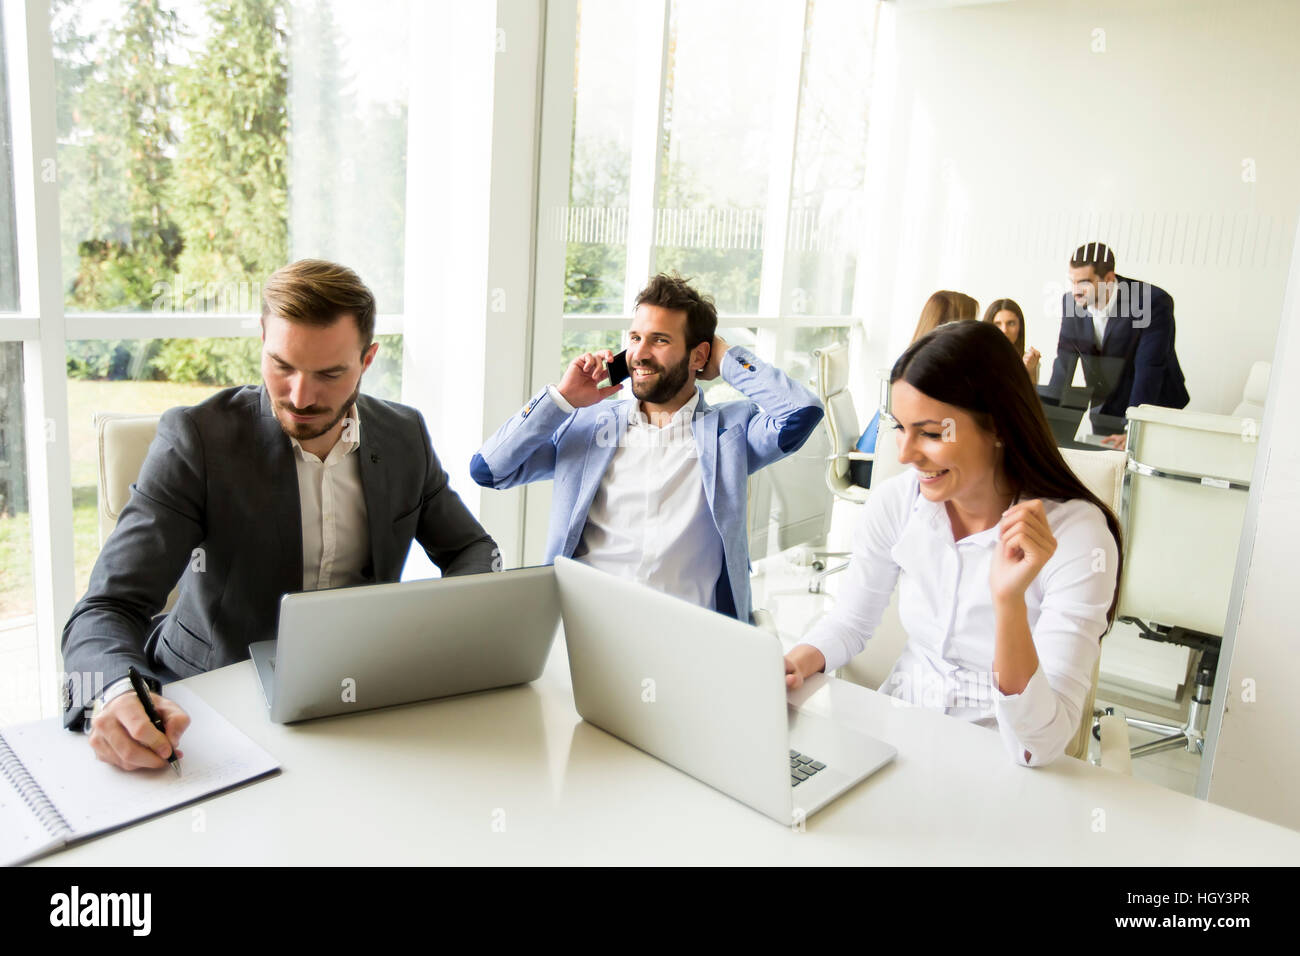 Young business people having meeting in modern office - Stock Image